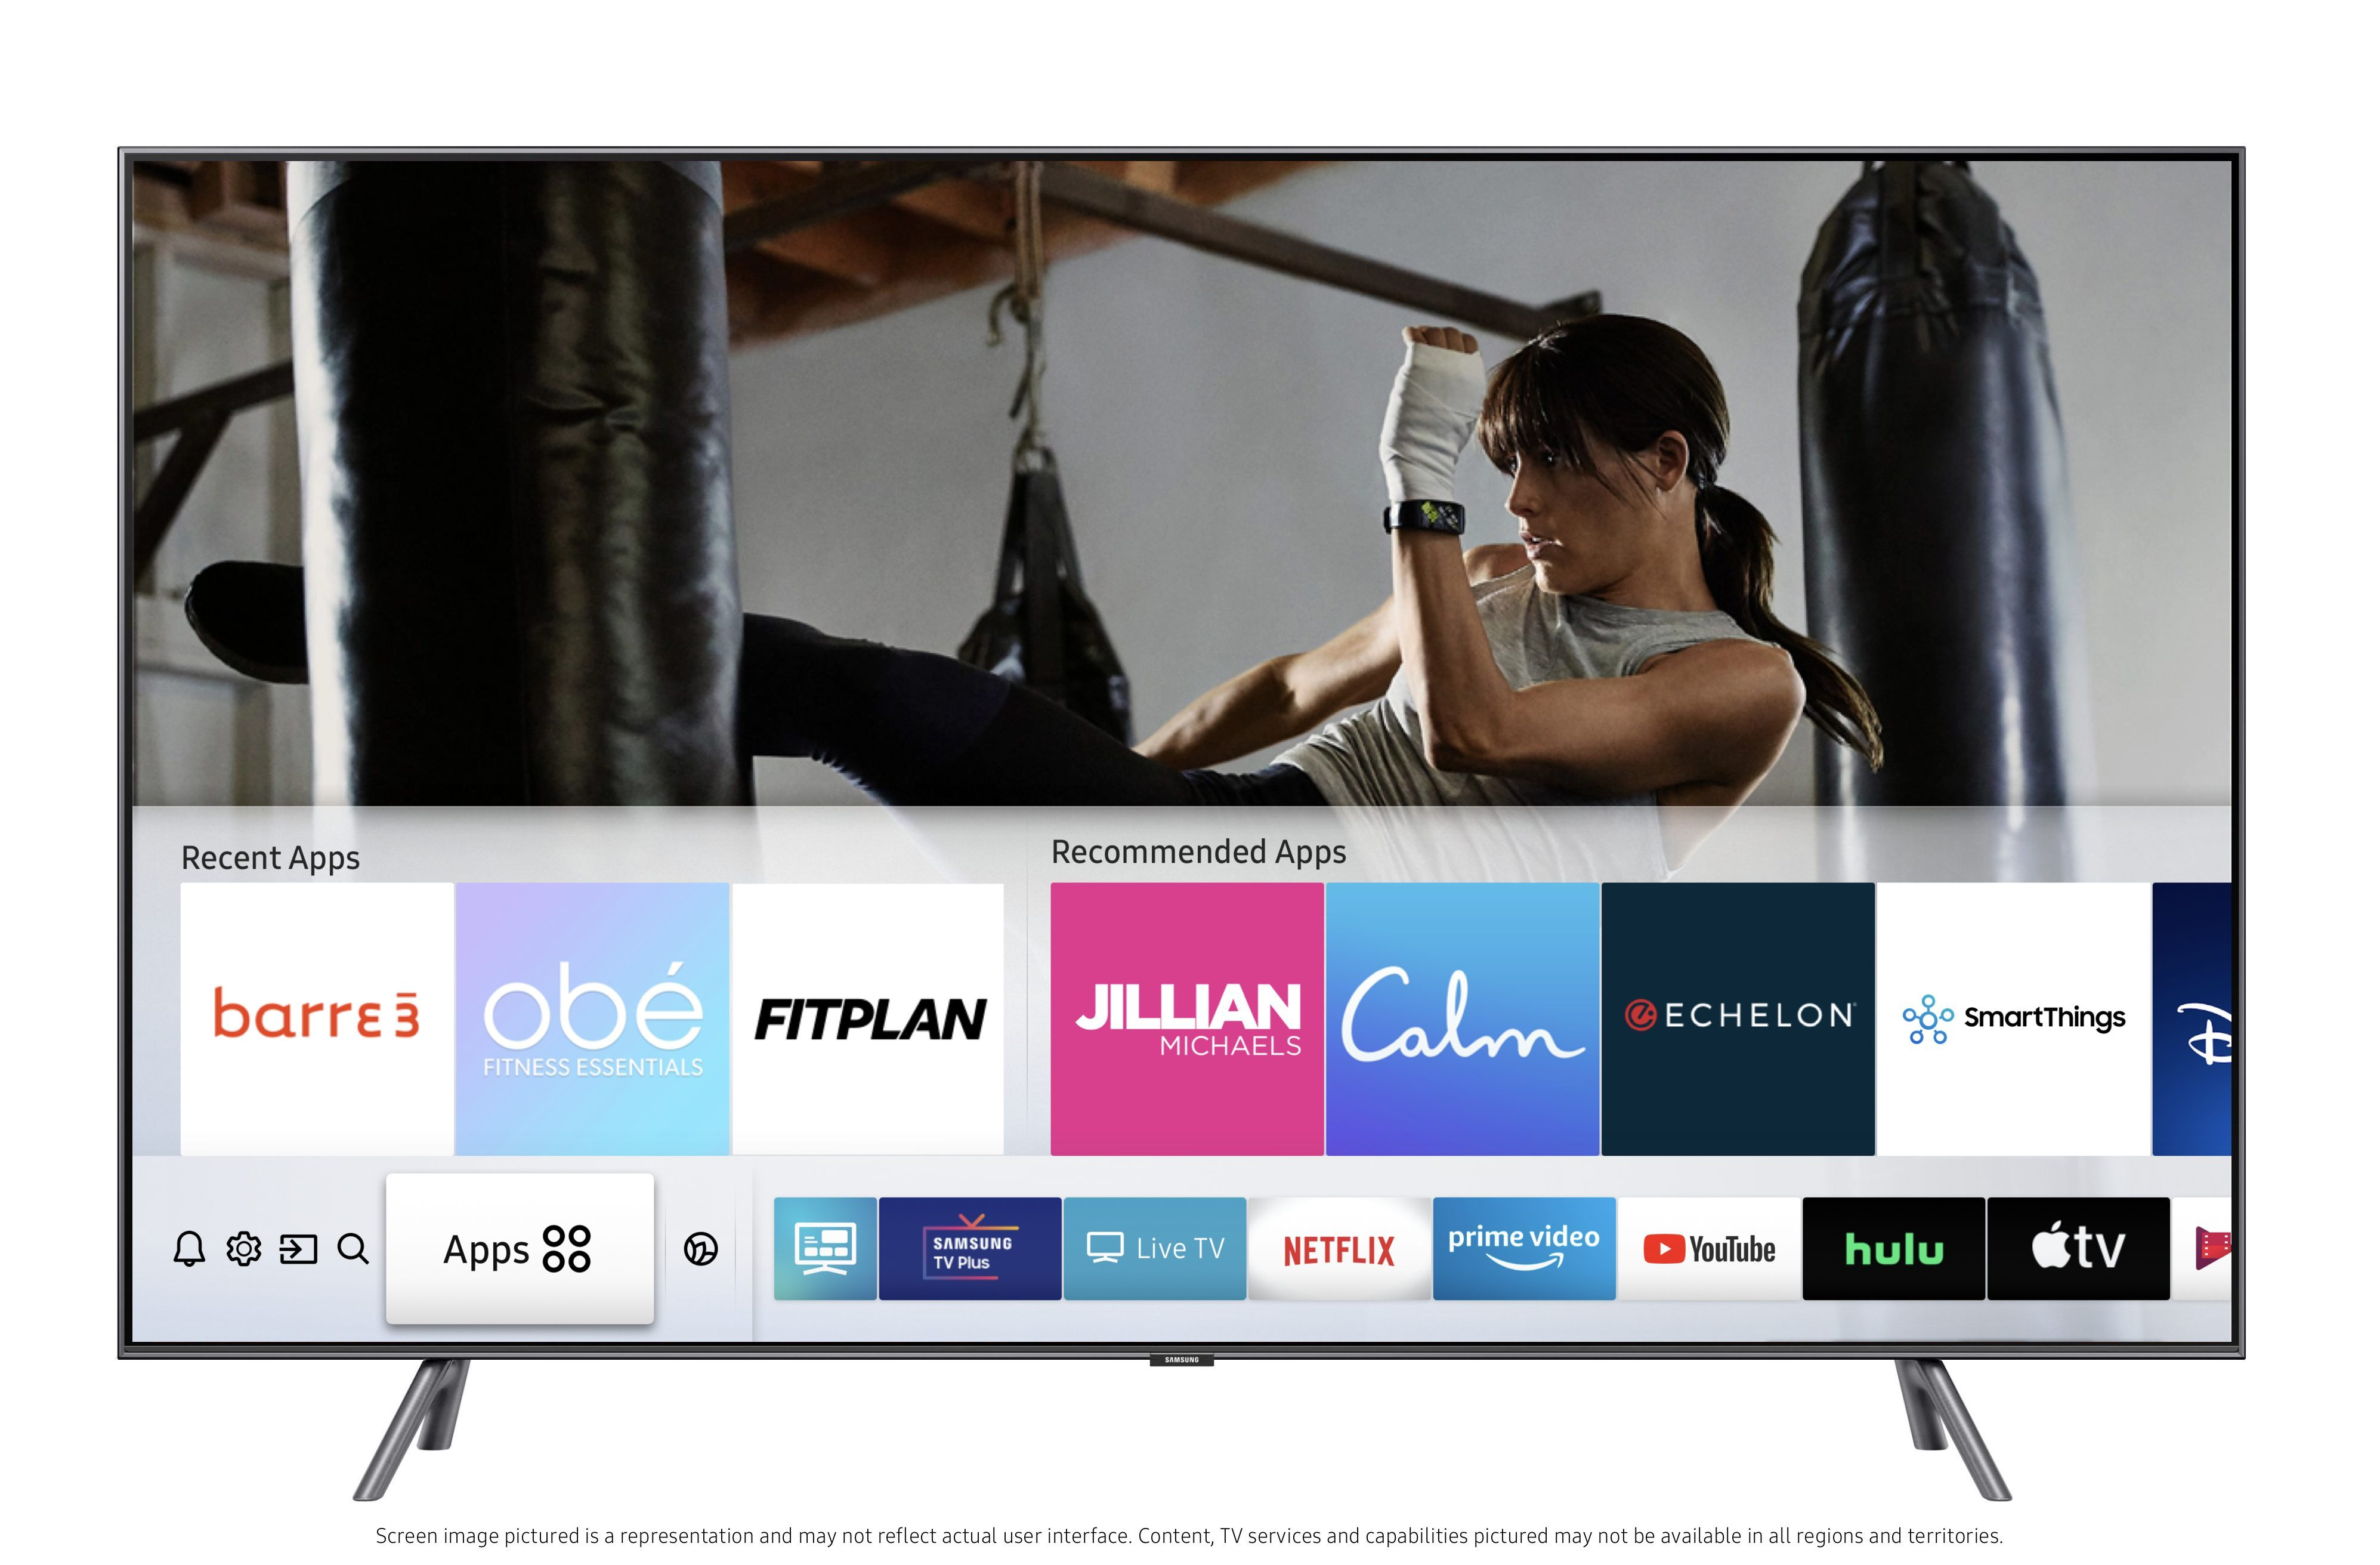 Samsung Smart TVs fitness titak Samsung Smart TV Owners Given Free Access To Health & Fitness Plans